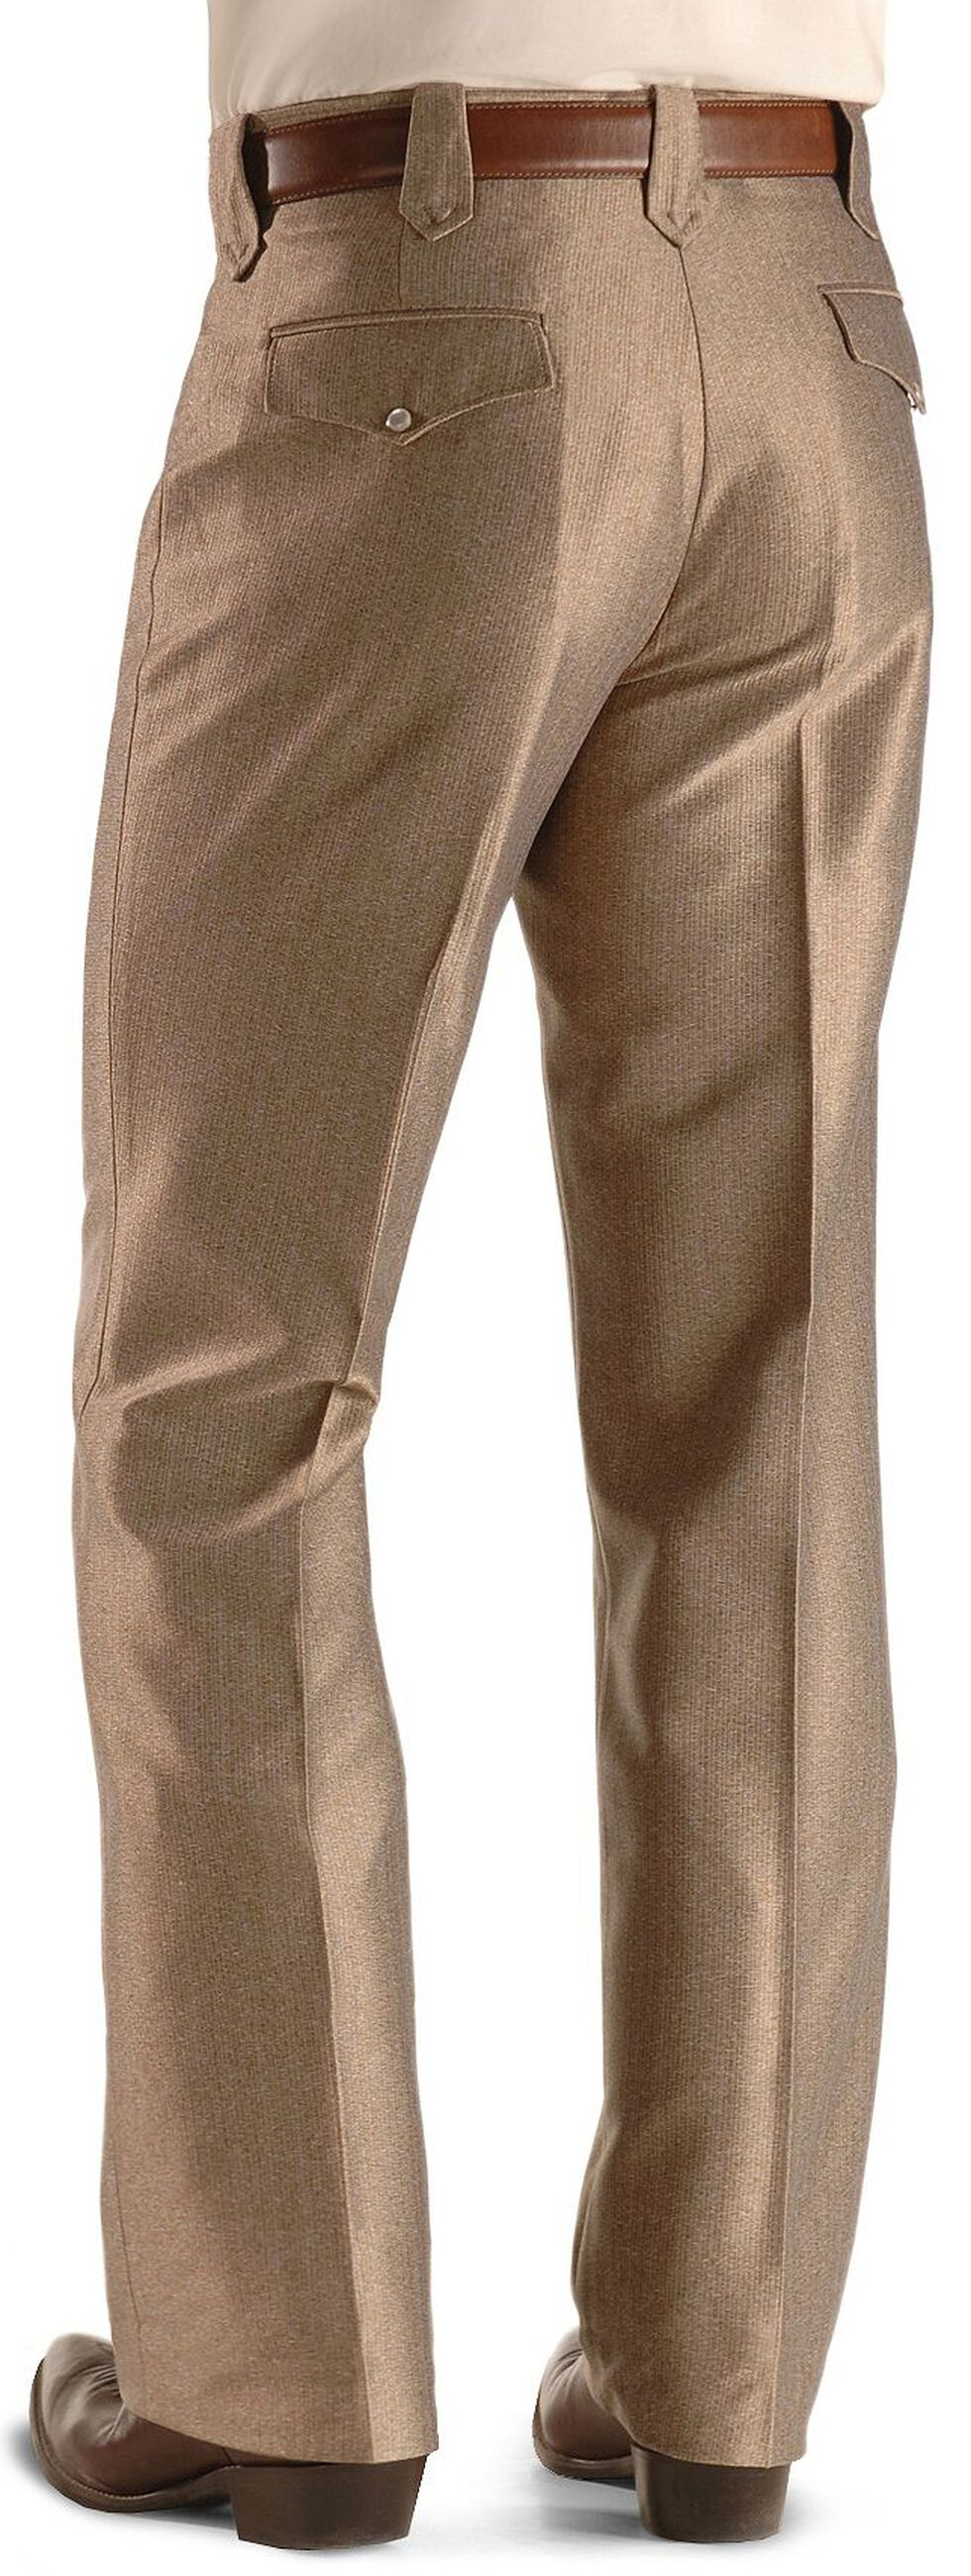 Circle S Boise Snap Dress Slacks, Khaki, hi-res